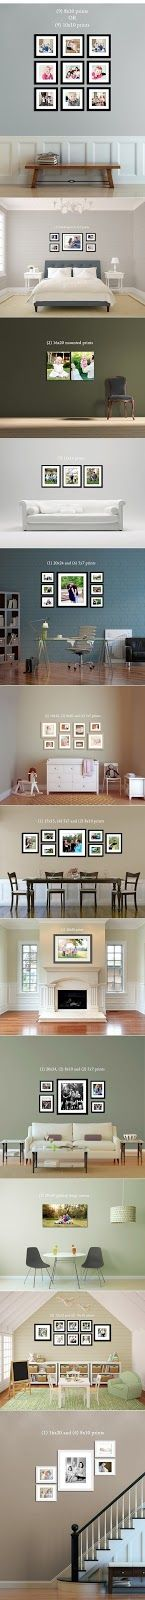 Interior decoration how to hang photos picture home design interior 25 Examples Of How To Display Photos On Your Walls Interior Exterior, Home Interior Design, Modern Interior, Picture Groupings, Picture Arrangements, Frame Arrangements, Photo Arrangement, Photo Grouping, Wall Groupings